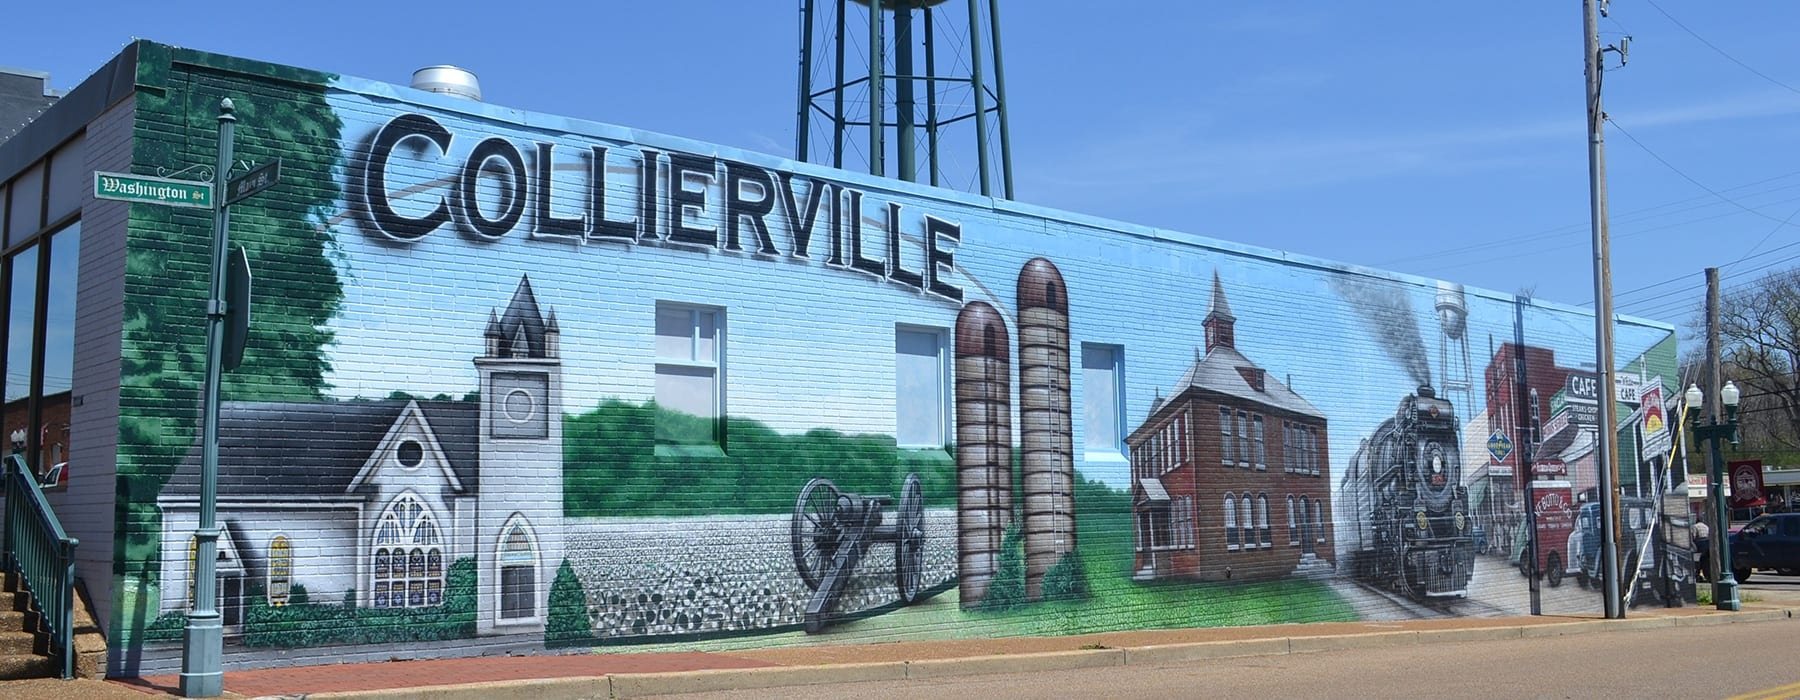 painting of Collierville on side of building in downtown Collierville